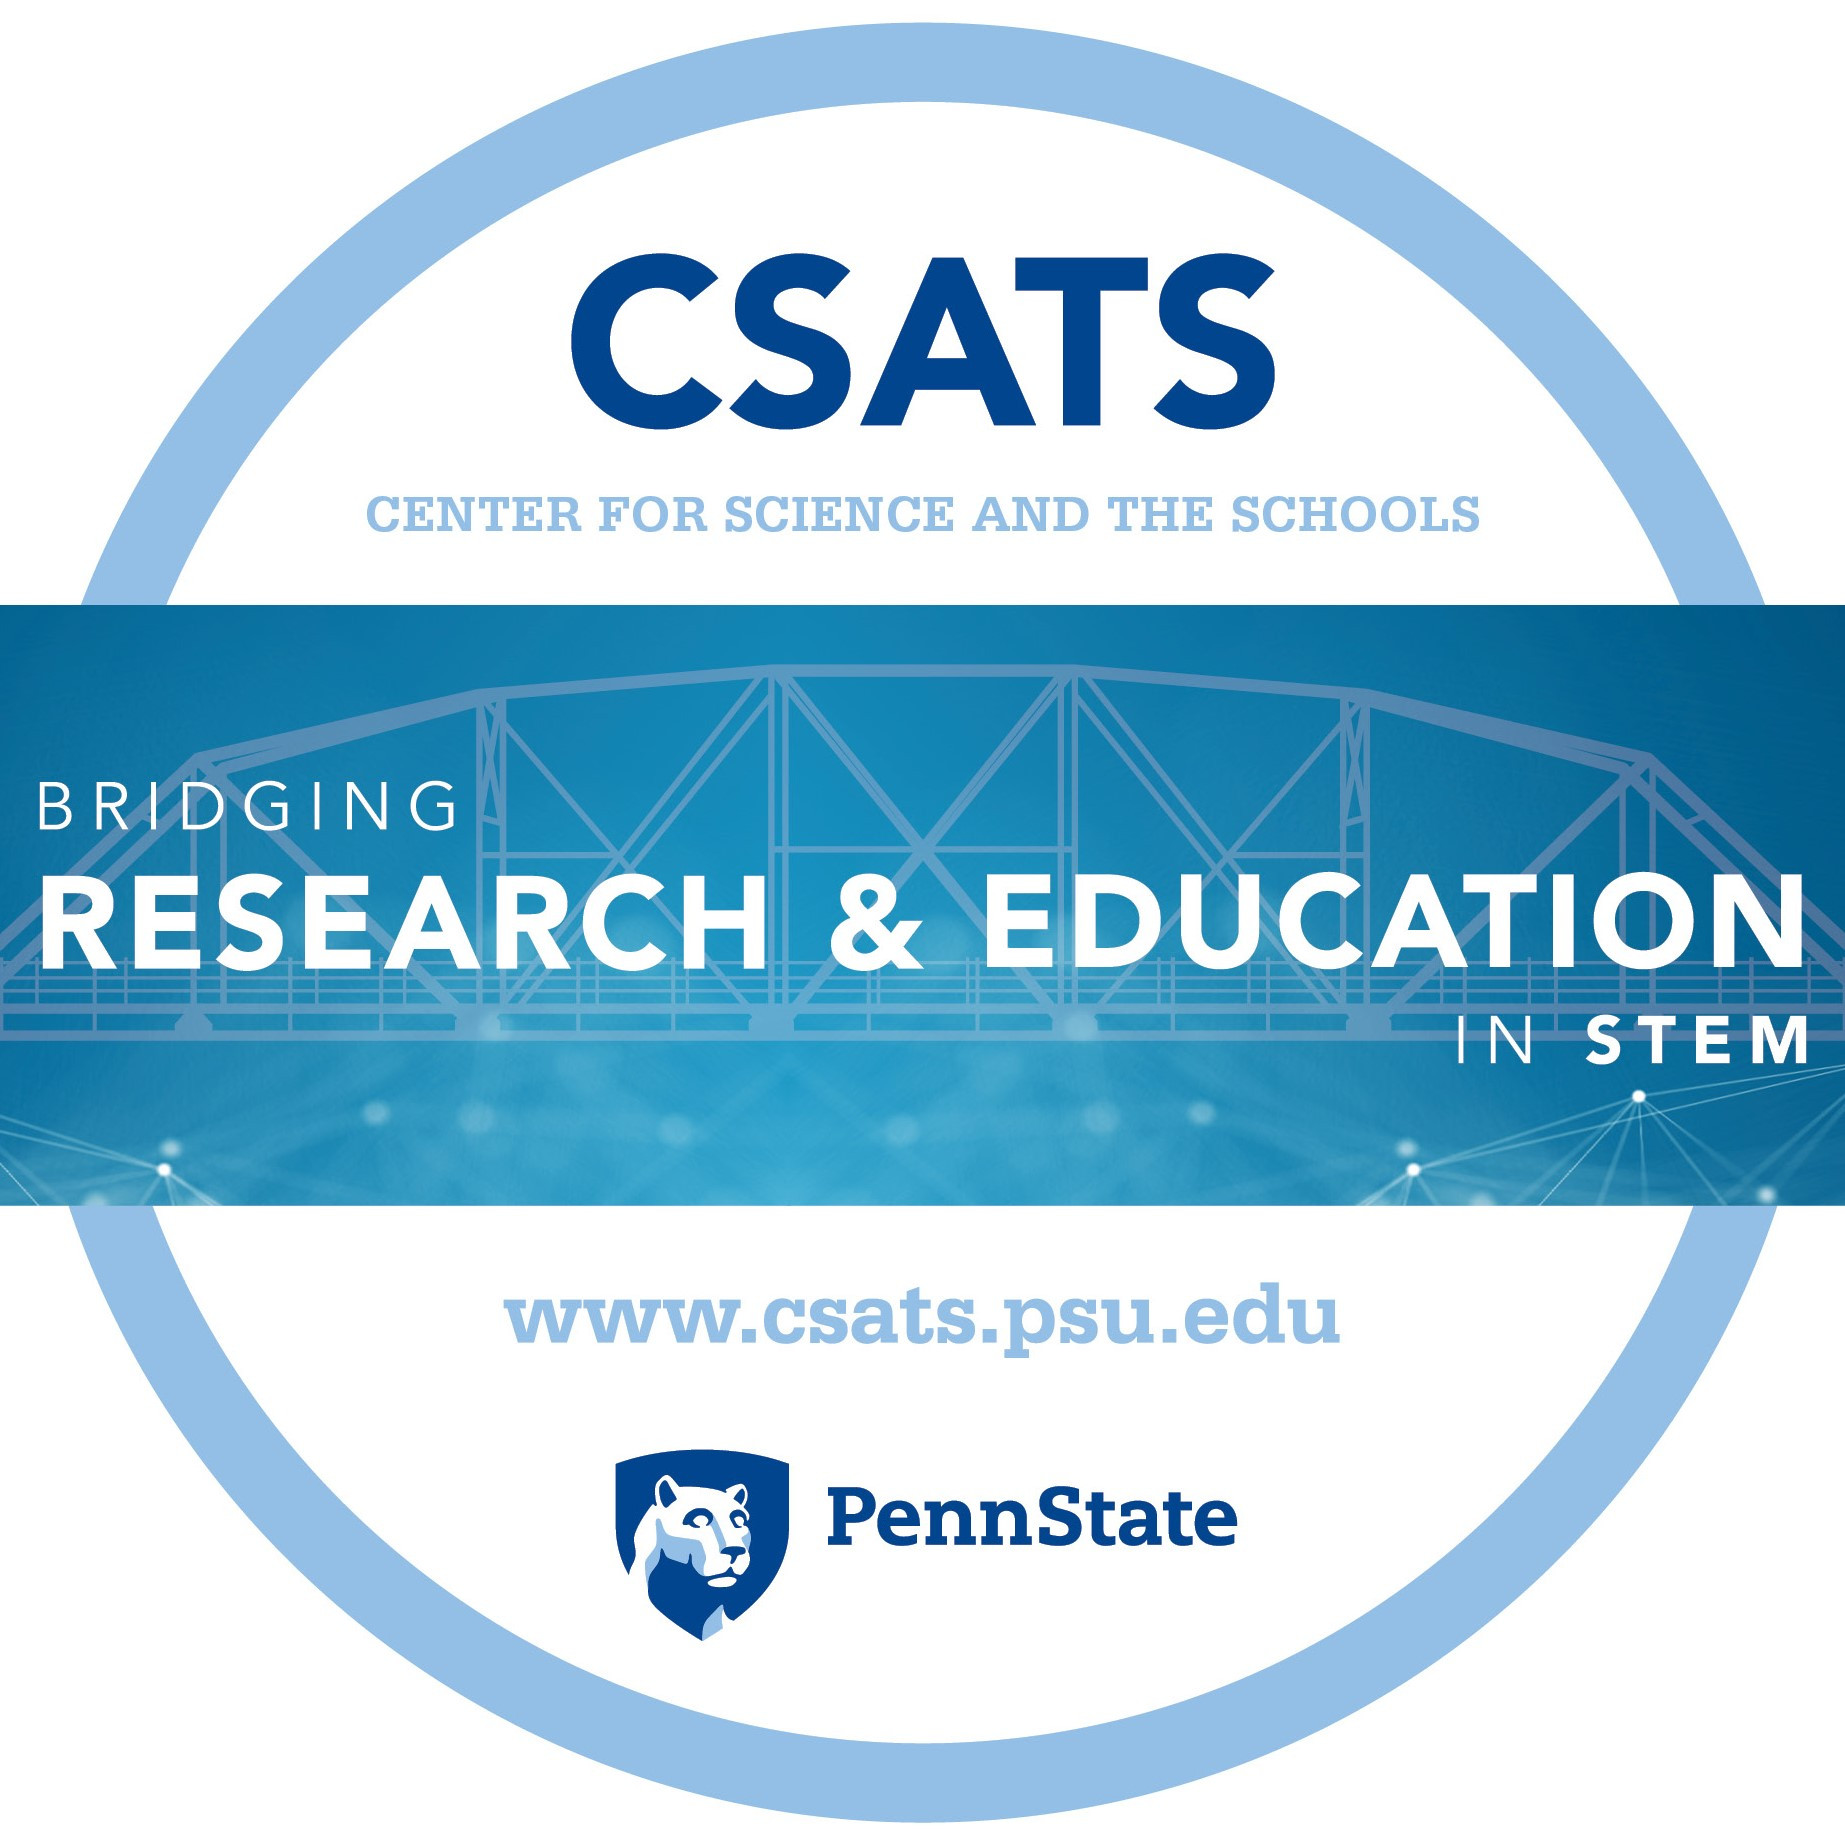 Penn State Center for Science and the Schools  profile picture